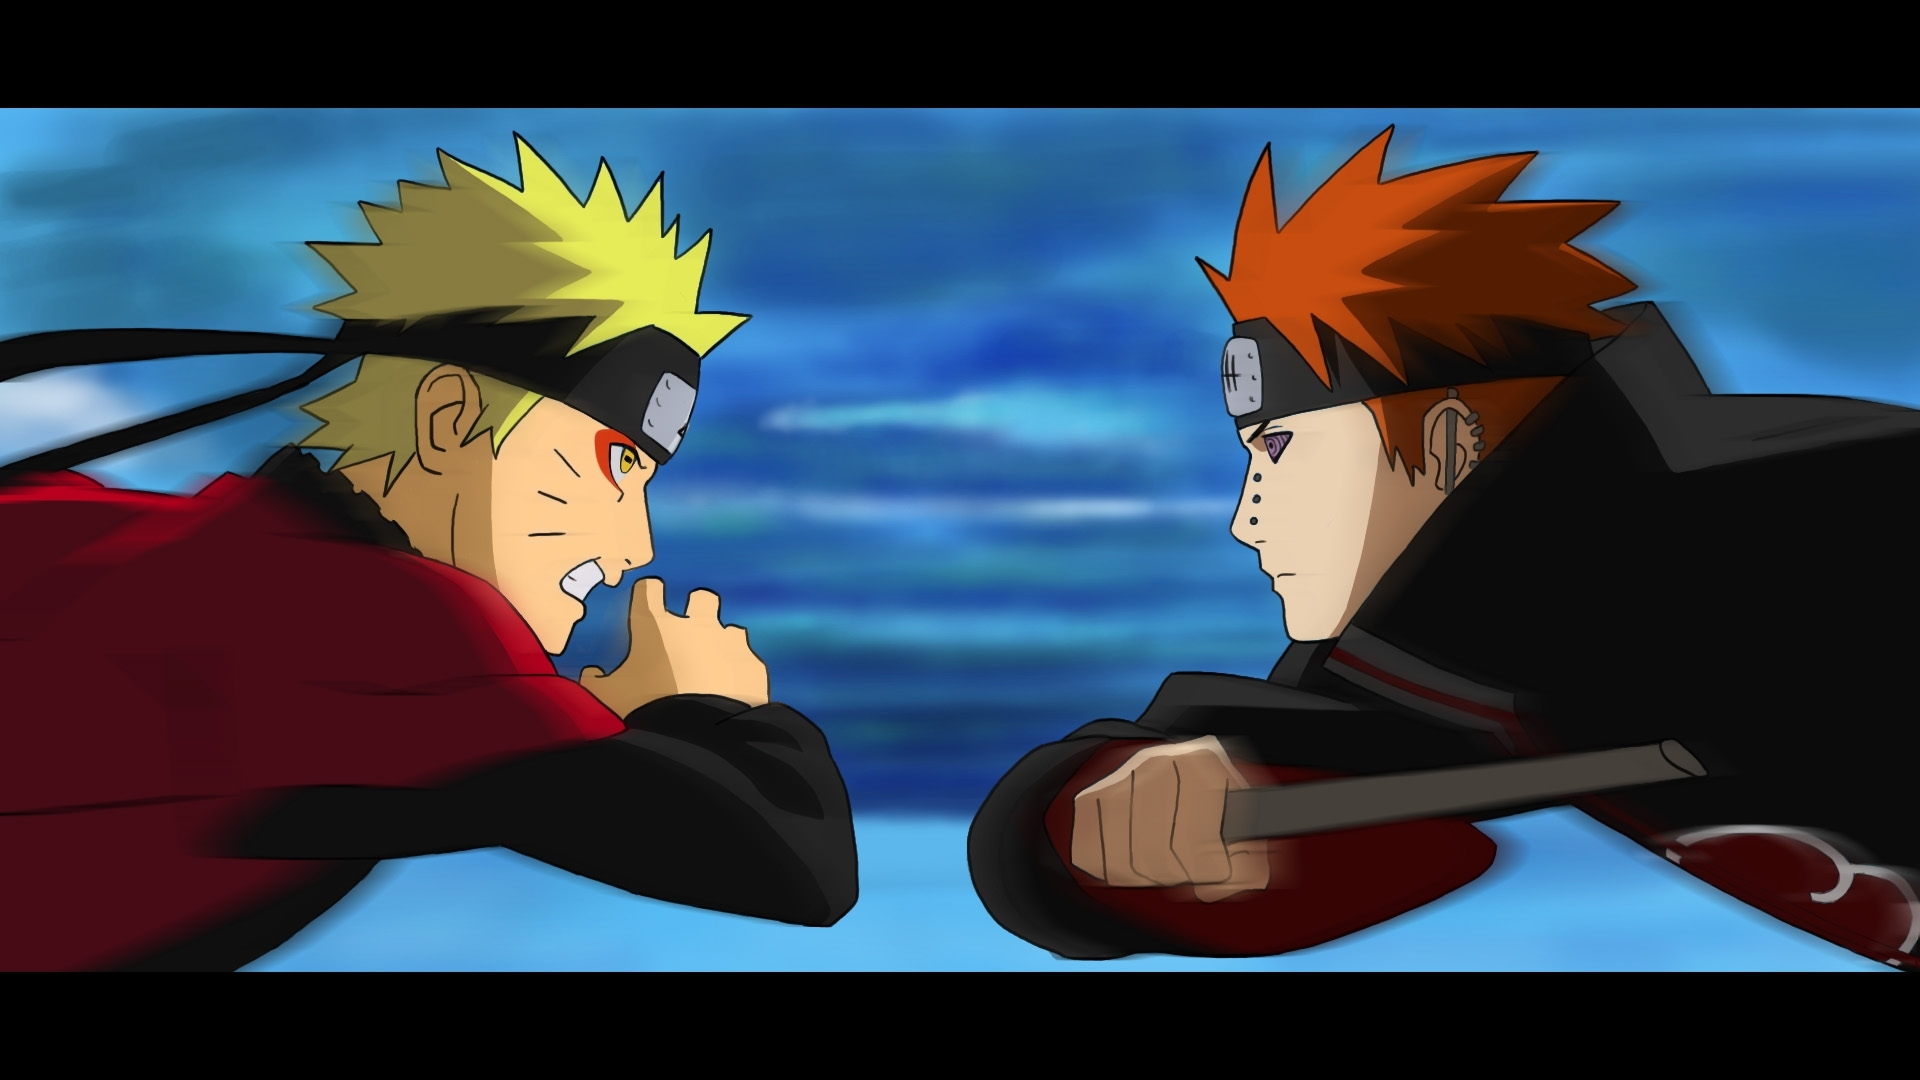 video - naruto vs pain | anime fight - artistenumerique